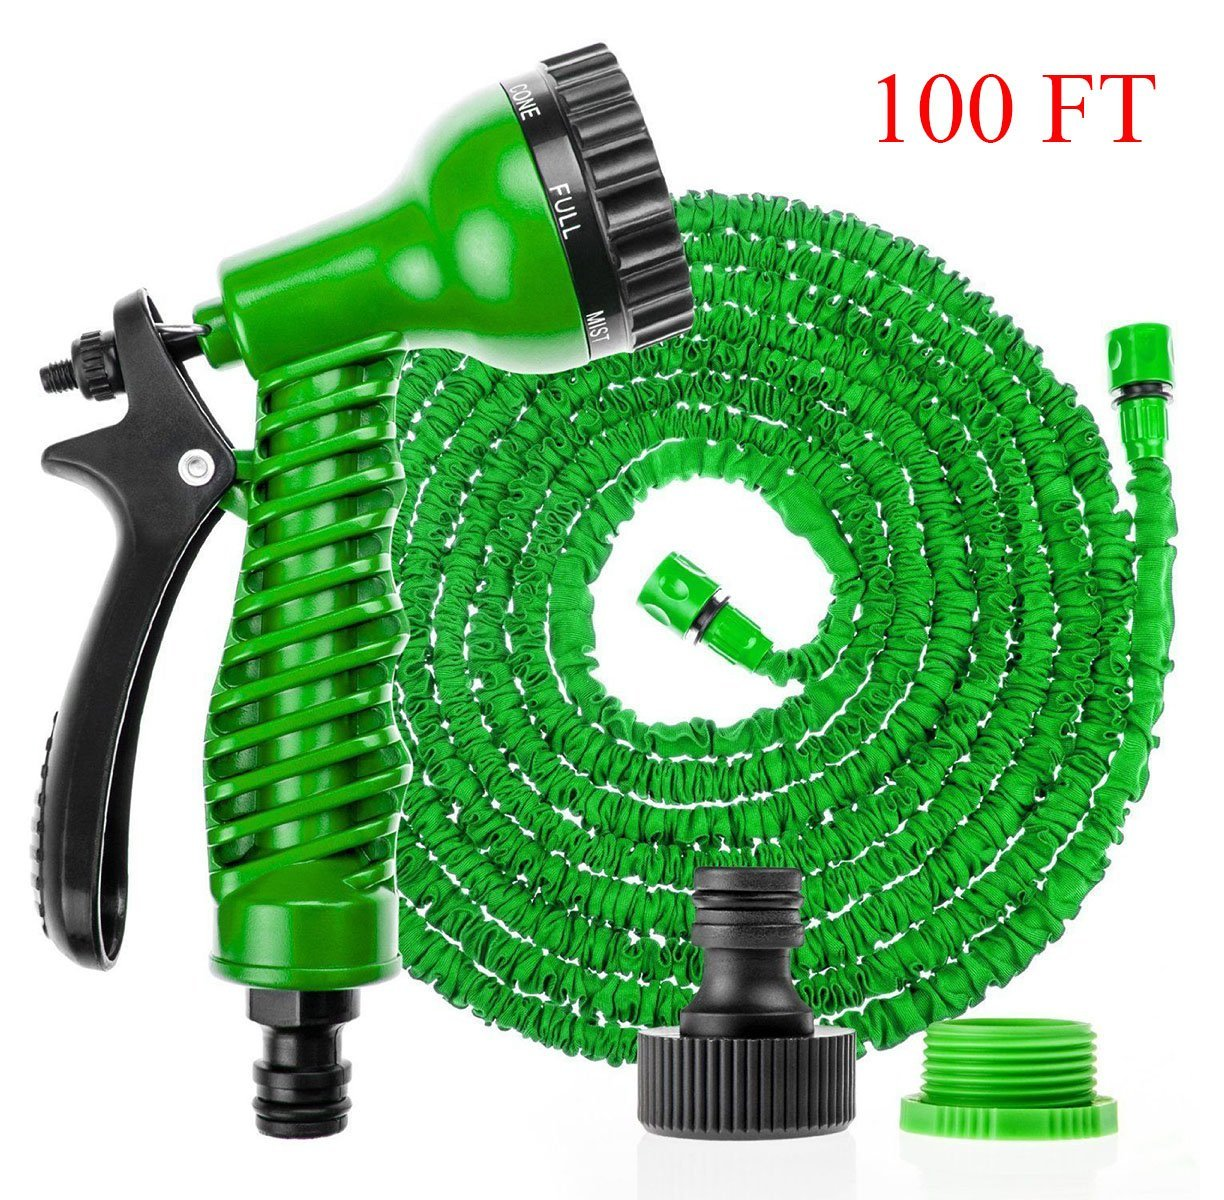 Hose Pipe Expandable 100FT with Spray Gun 7 Pattern Garden Watering Washing Magic Flexible Lightweight Hosepipe Green dicn factory